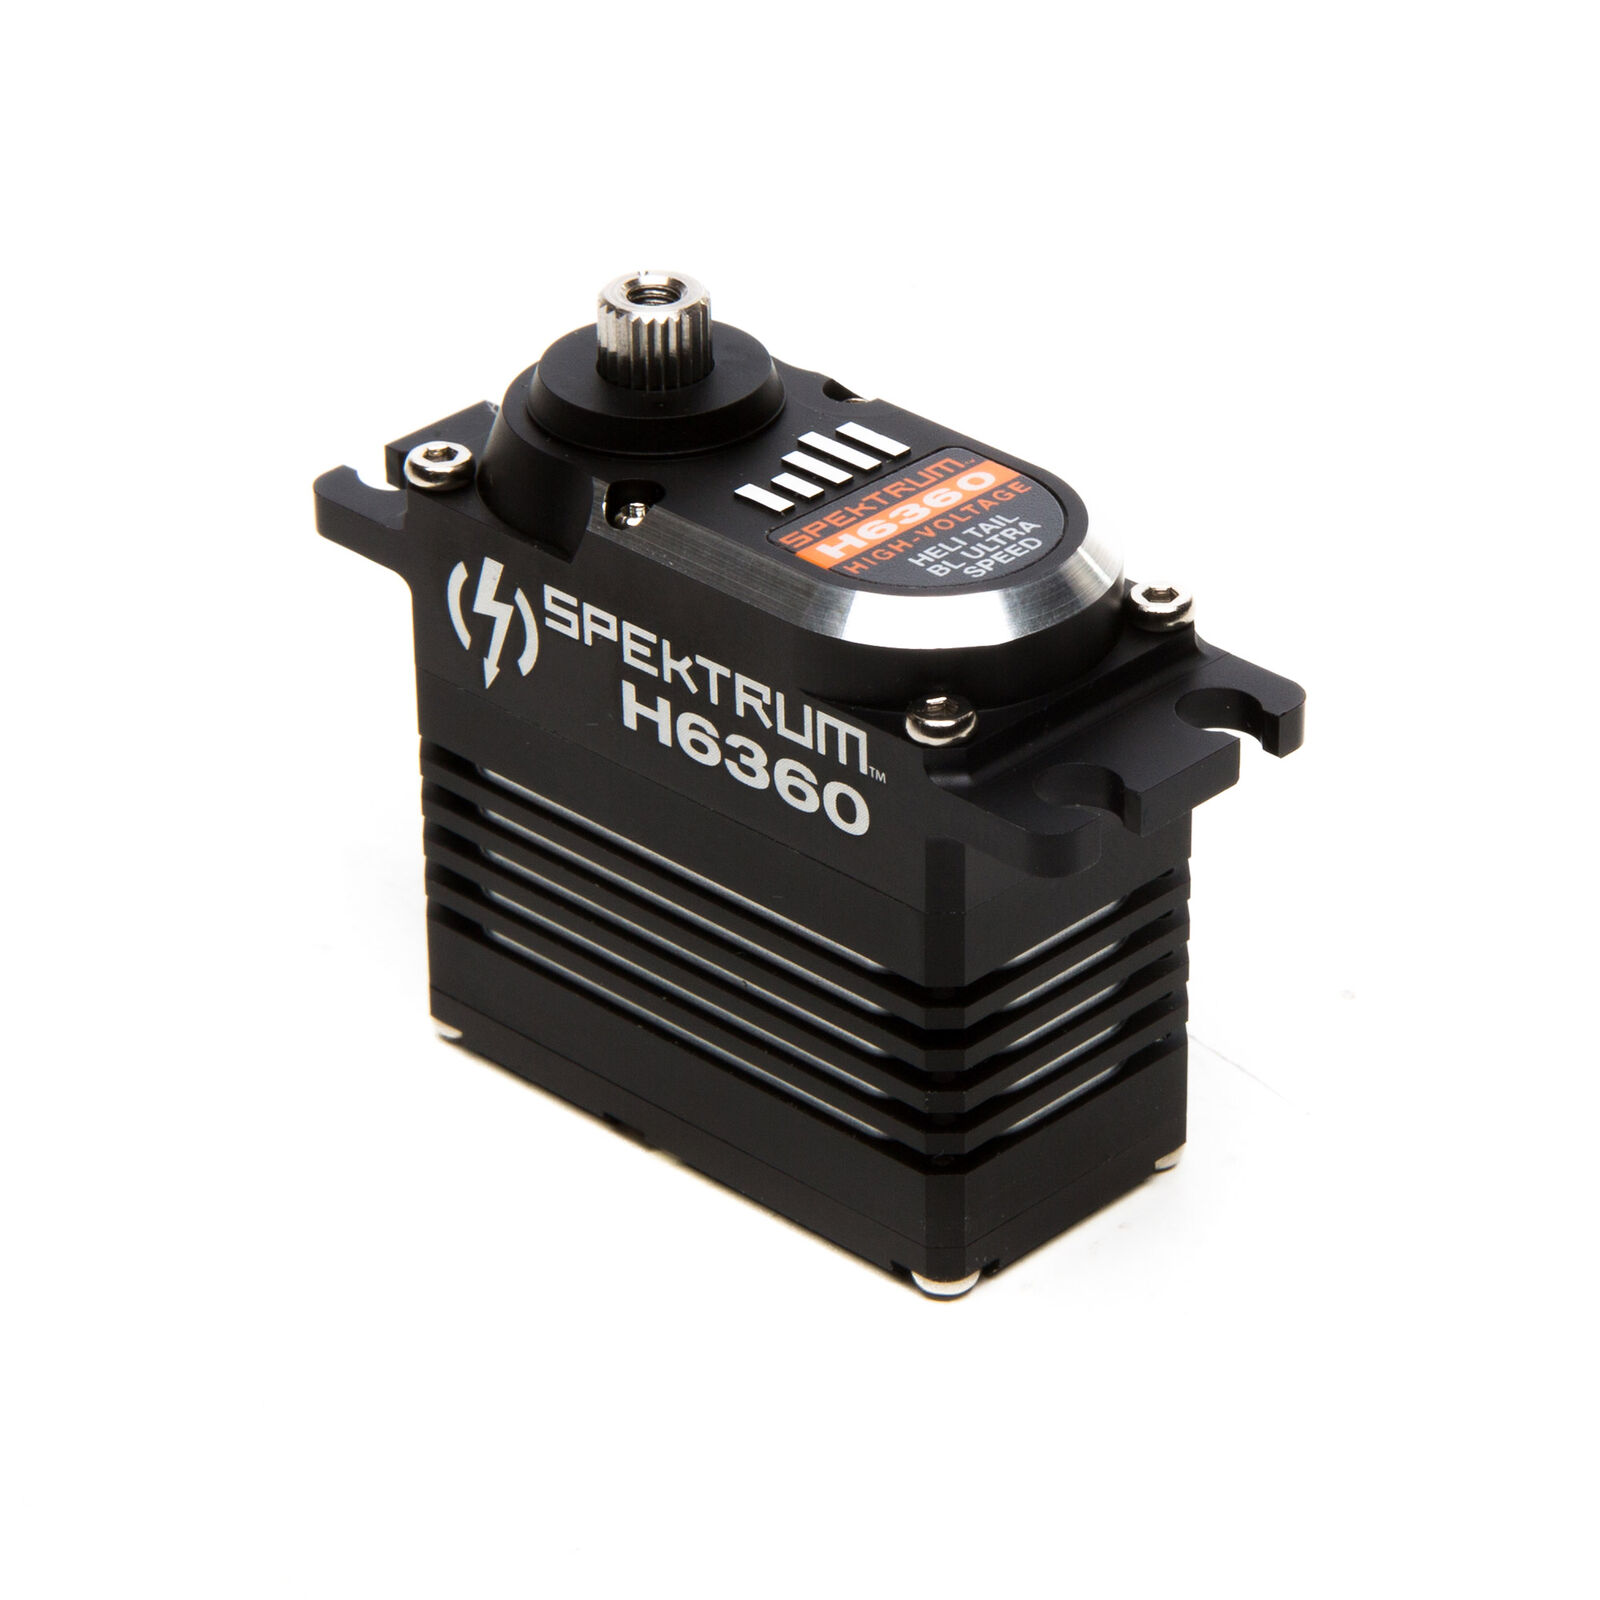 H6360 Standard Digital HV Brushless Mid Torque Ultra Speed Heli Tail Servo